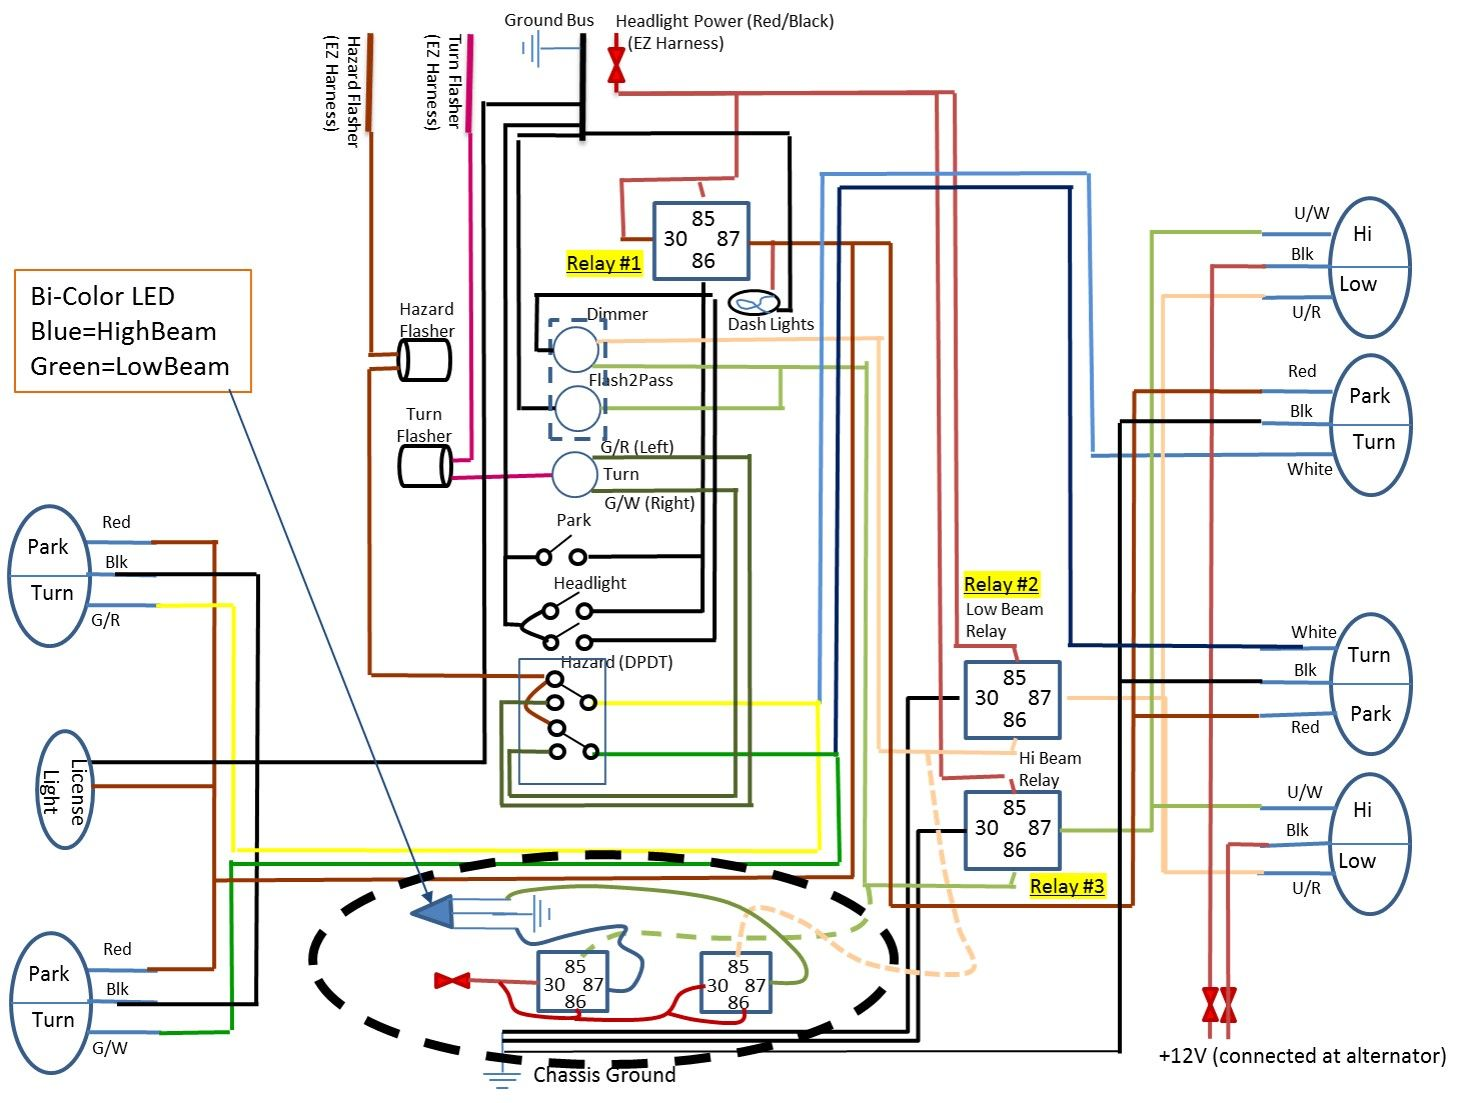 Relay Could Use Some Help On What Should Be A Simple Led Wiringbasic Car Wiring Diagram Electrical Wiring Diagram Light Switch Wiring Dash Lights